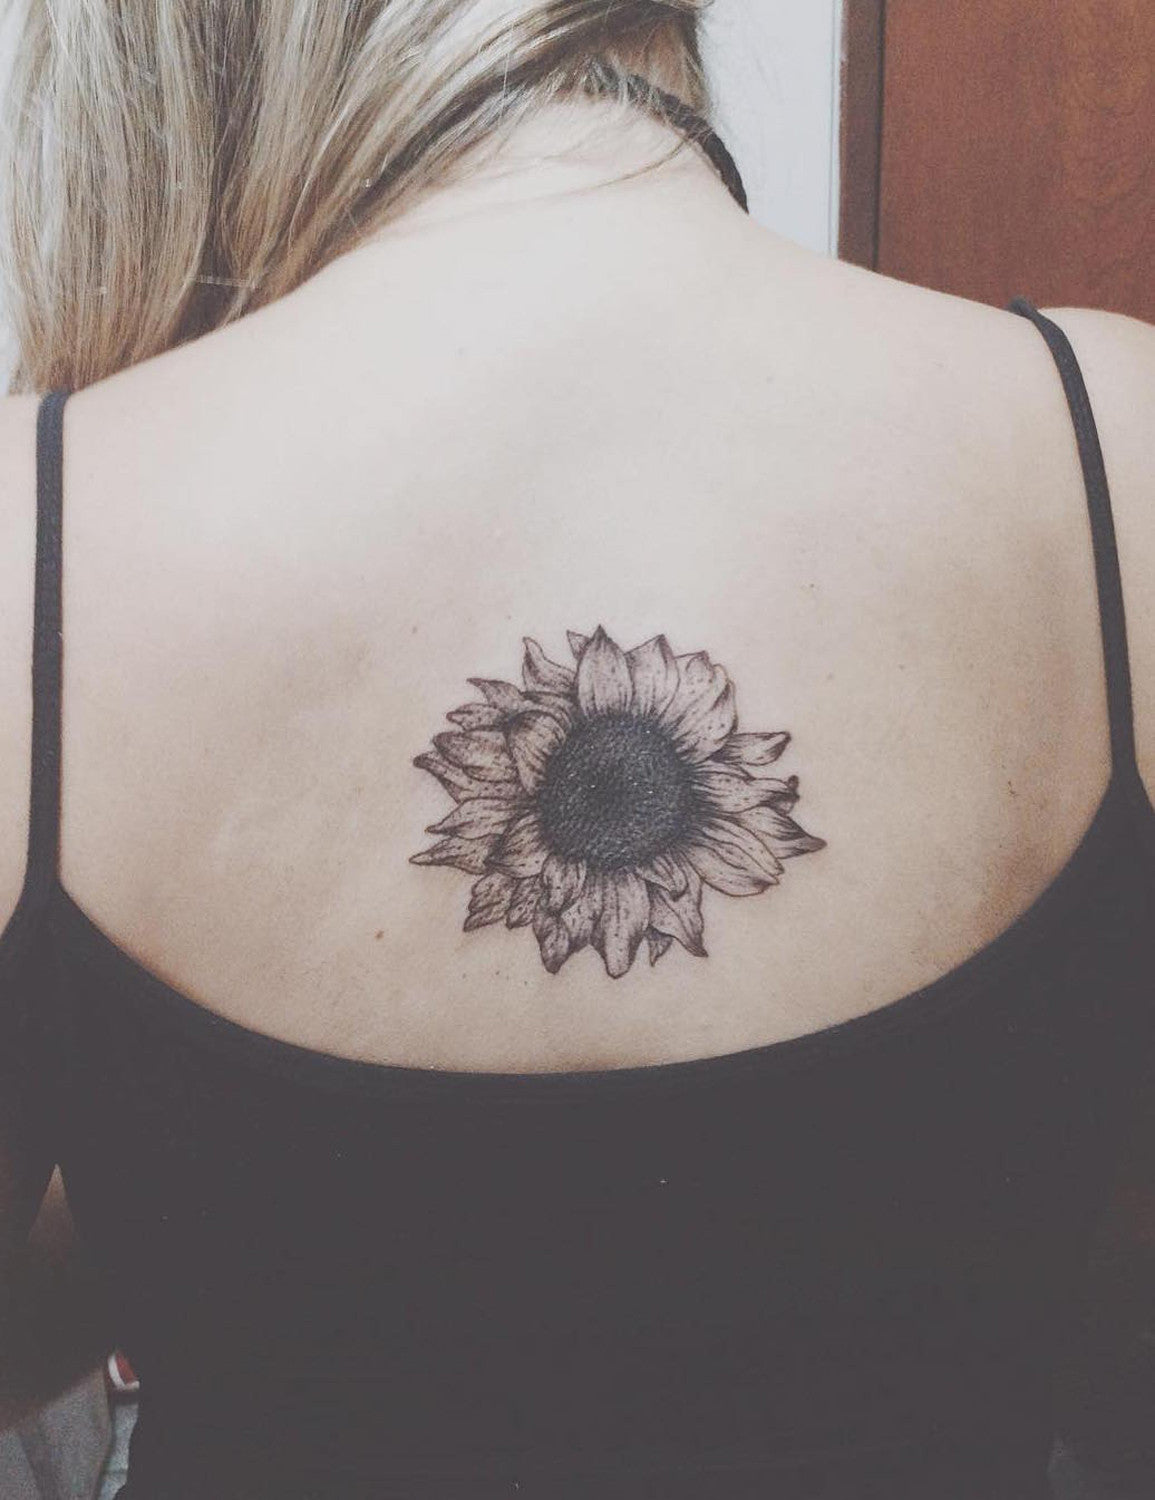 Small Black and White Floral Flower Sunflower Spine Tattoo Ideas for Women at MyBodiArt.com